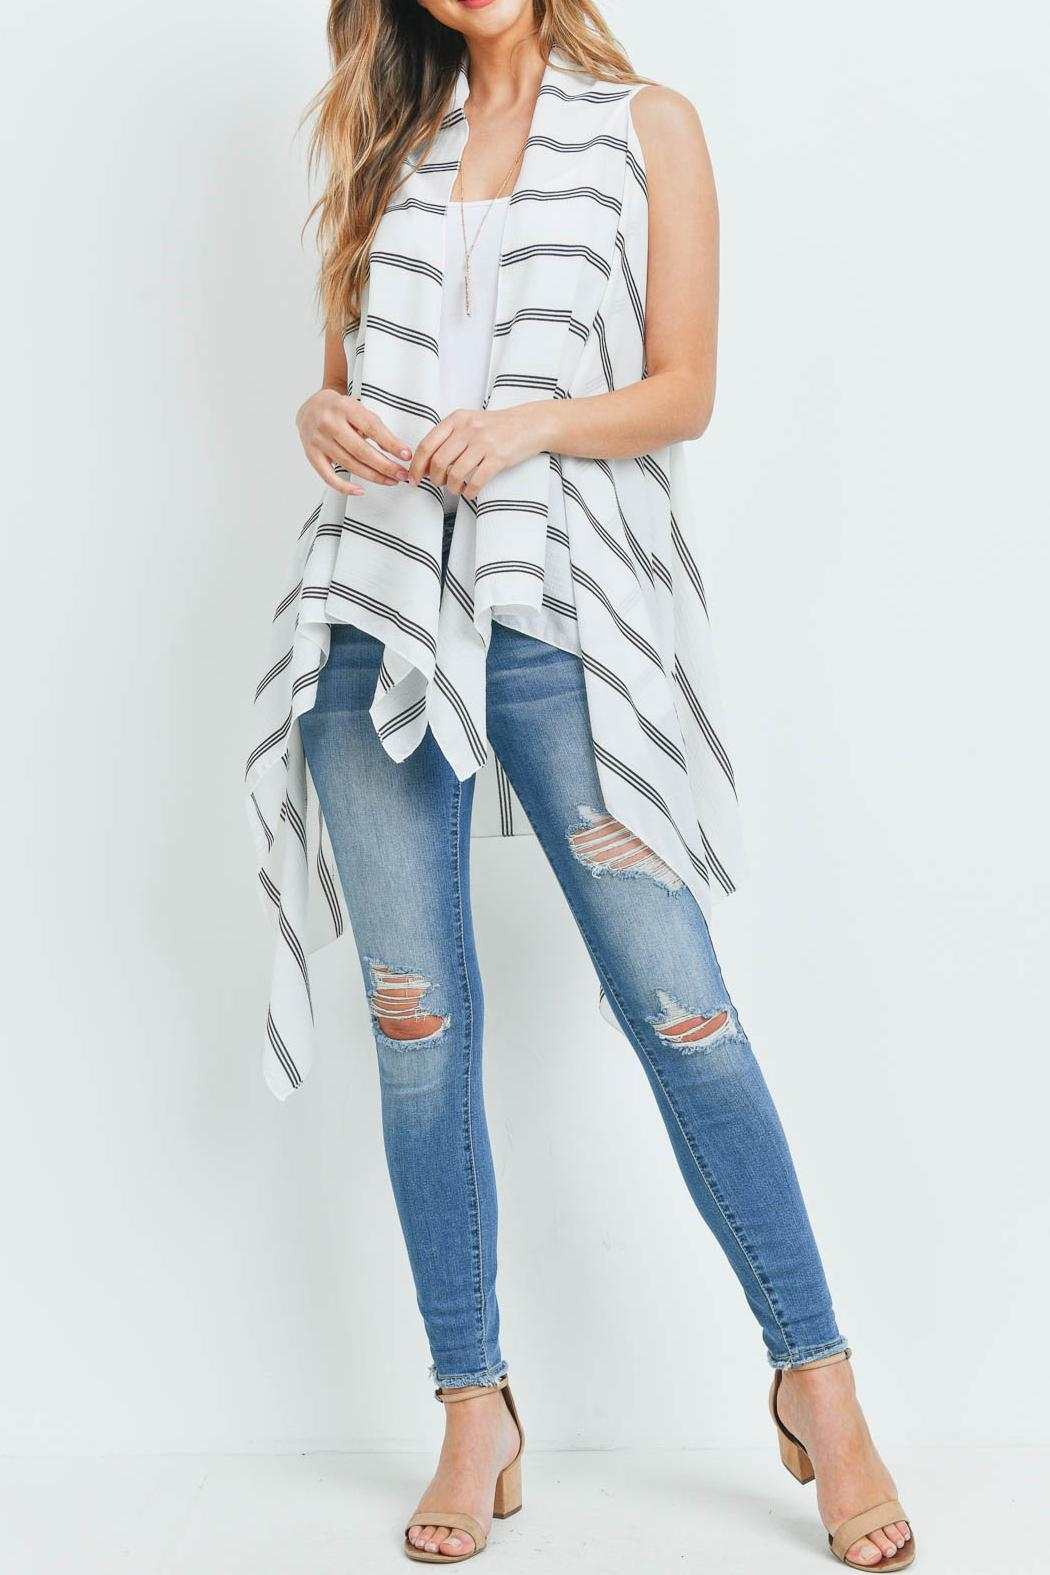 Riah Fashion Striped-Print-Kimono-Vest - Side Cropped Image